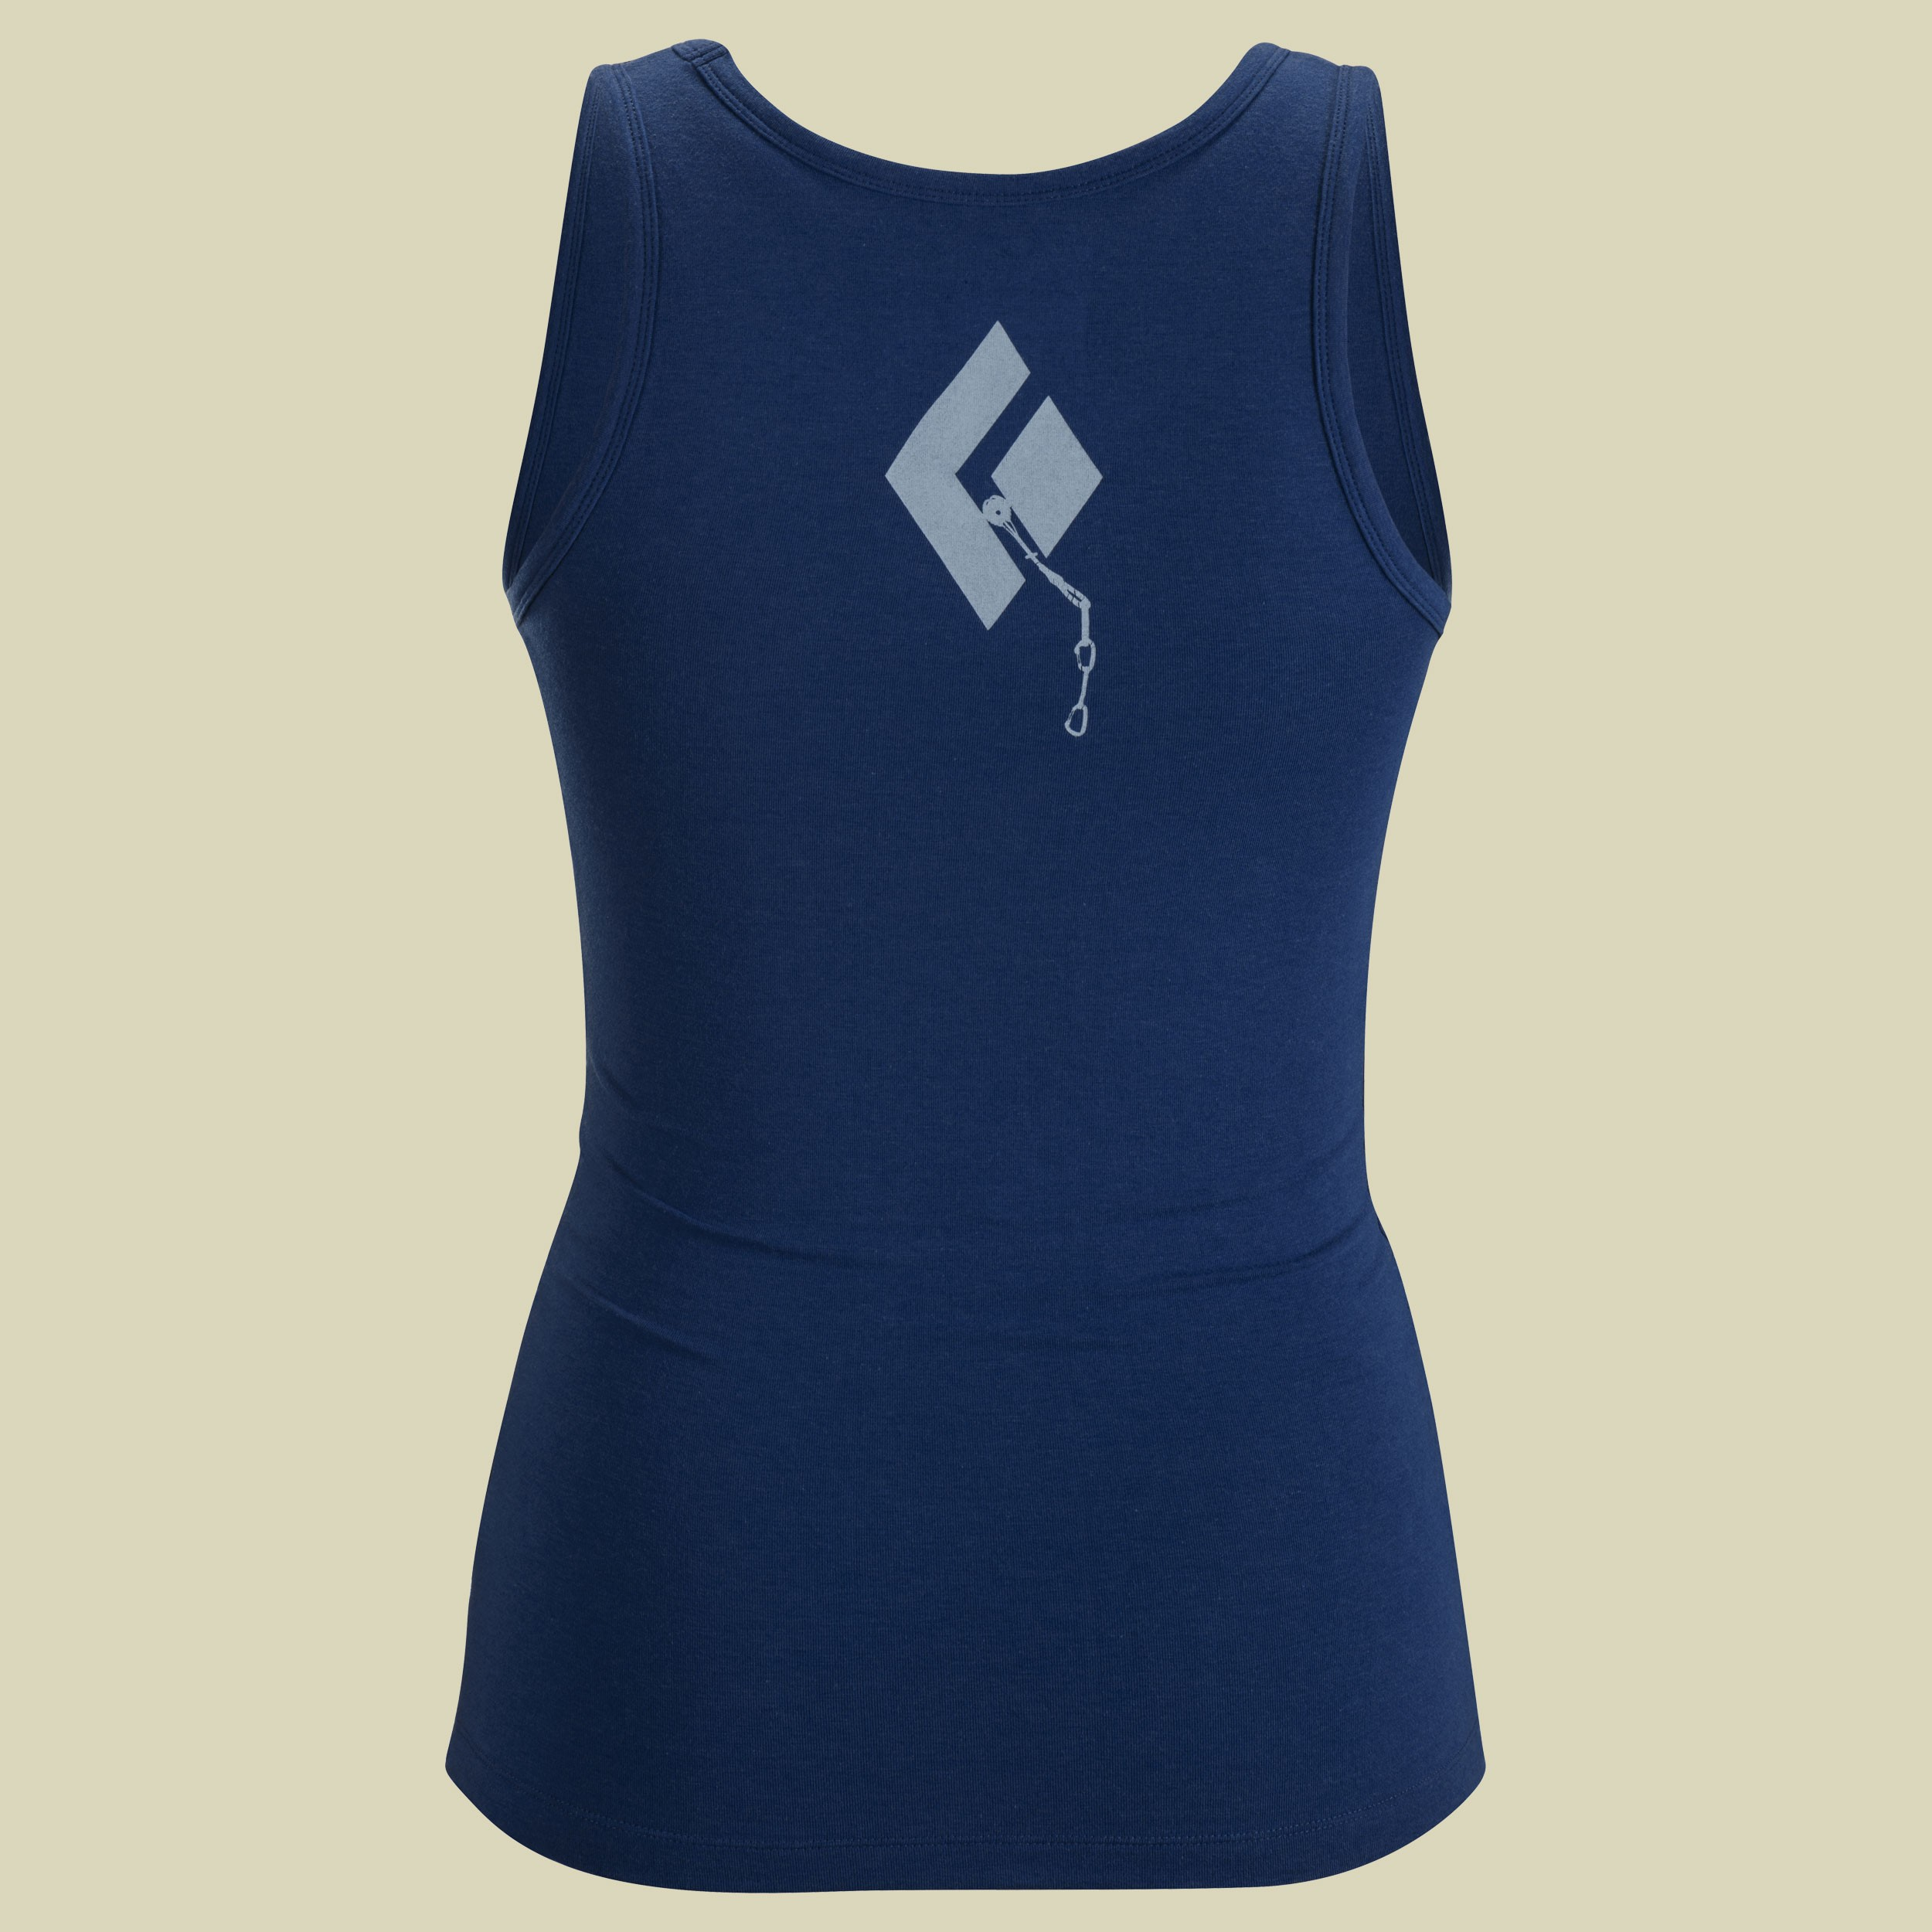 S/S Placement Tank Women